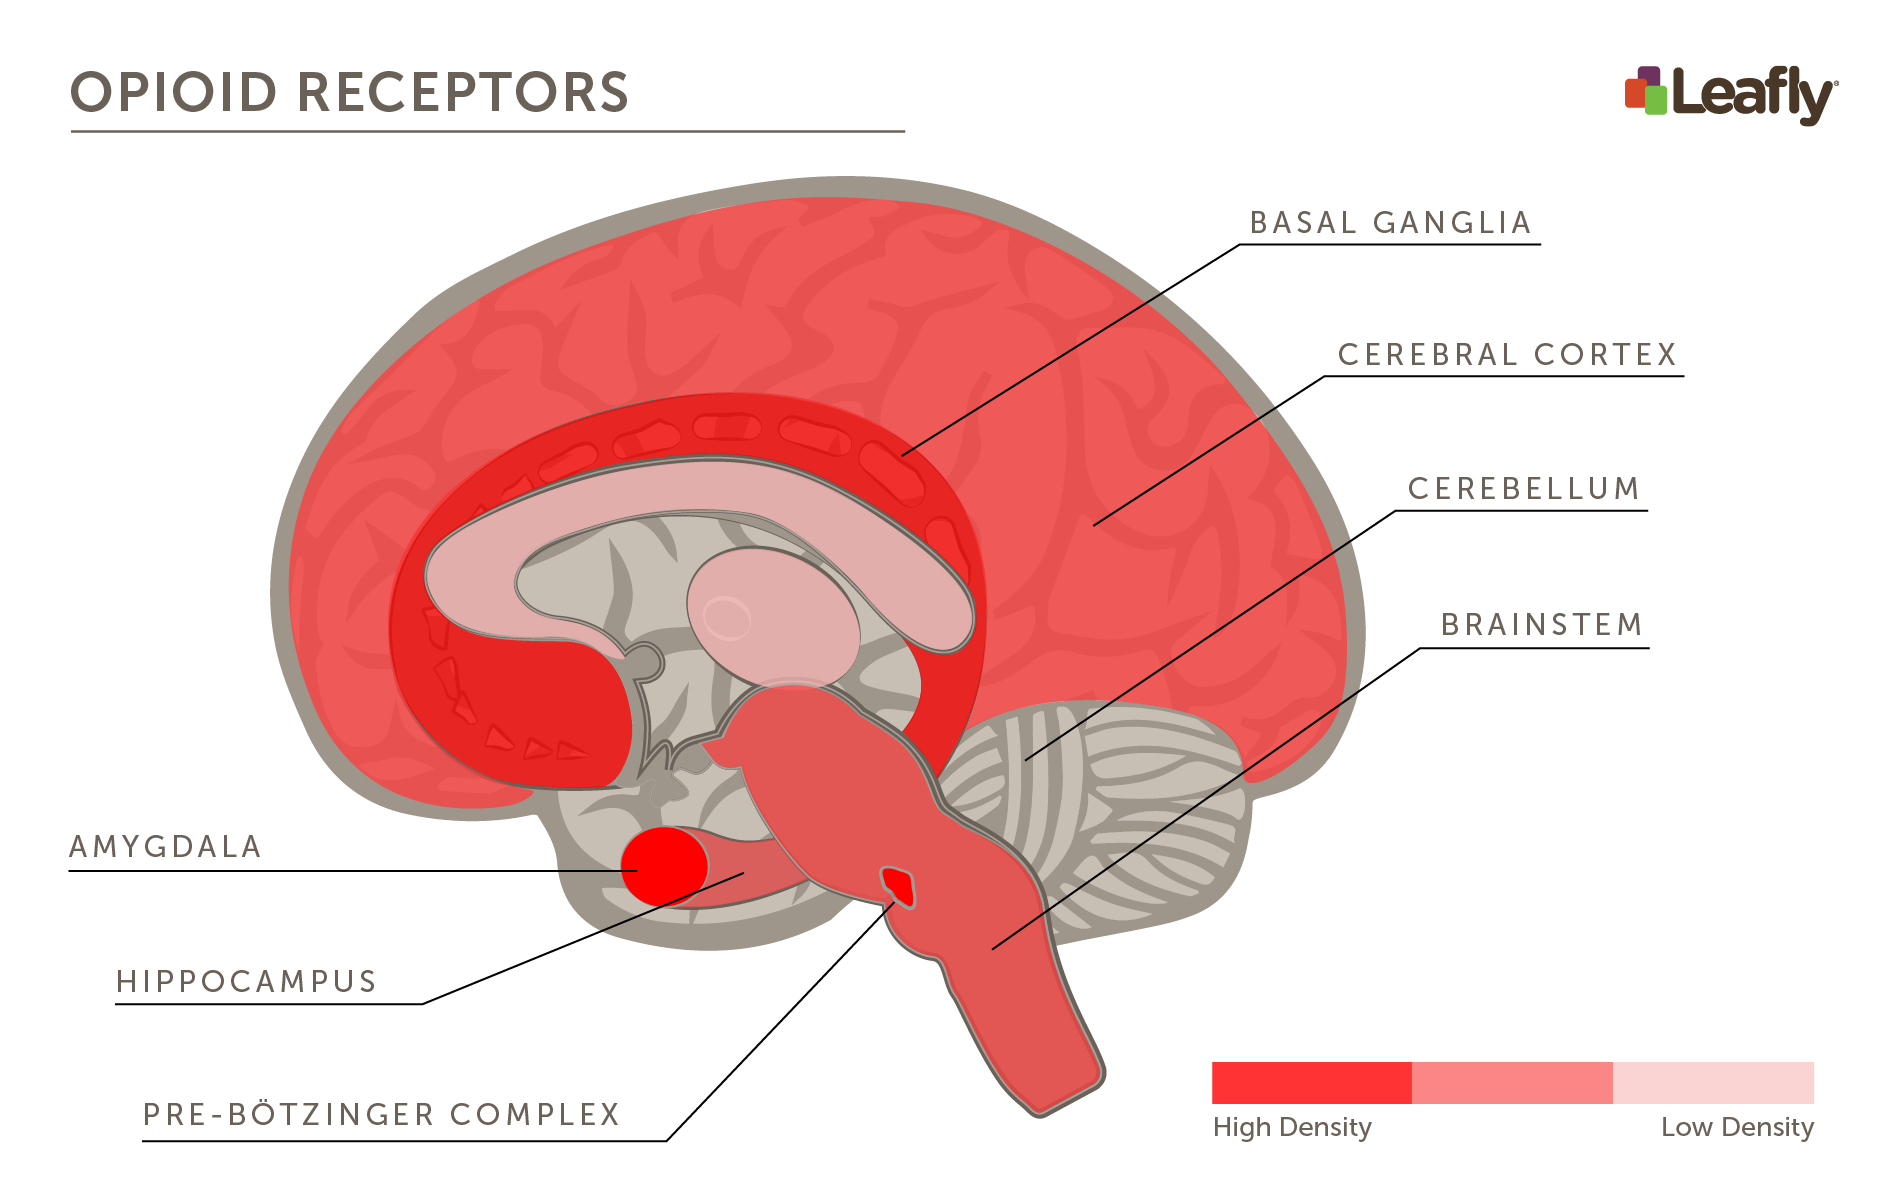 Brain areas with high densities of opioid receptors